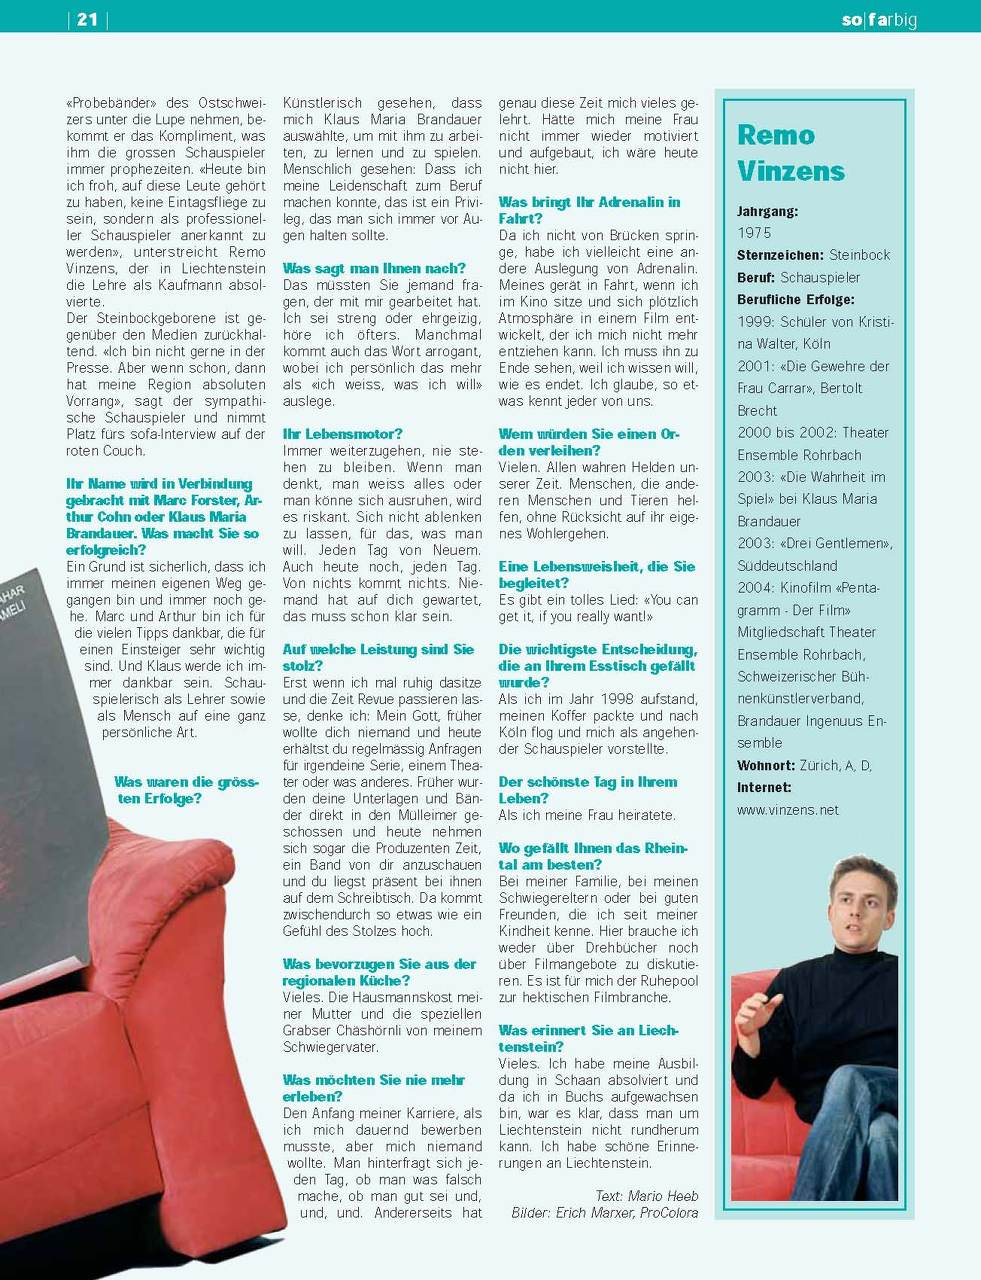 Sofa Magazin Press The New Official Remo Vinzens Website